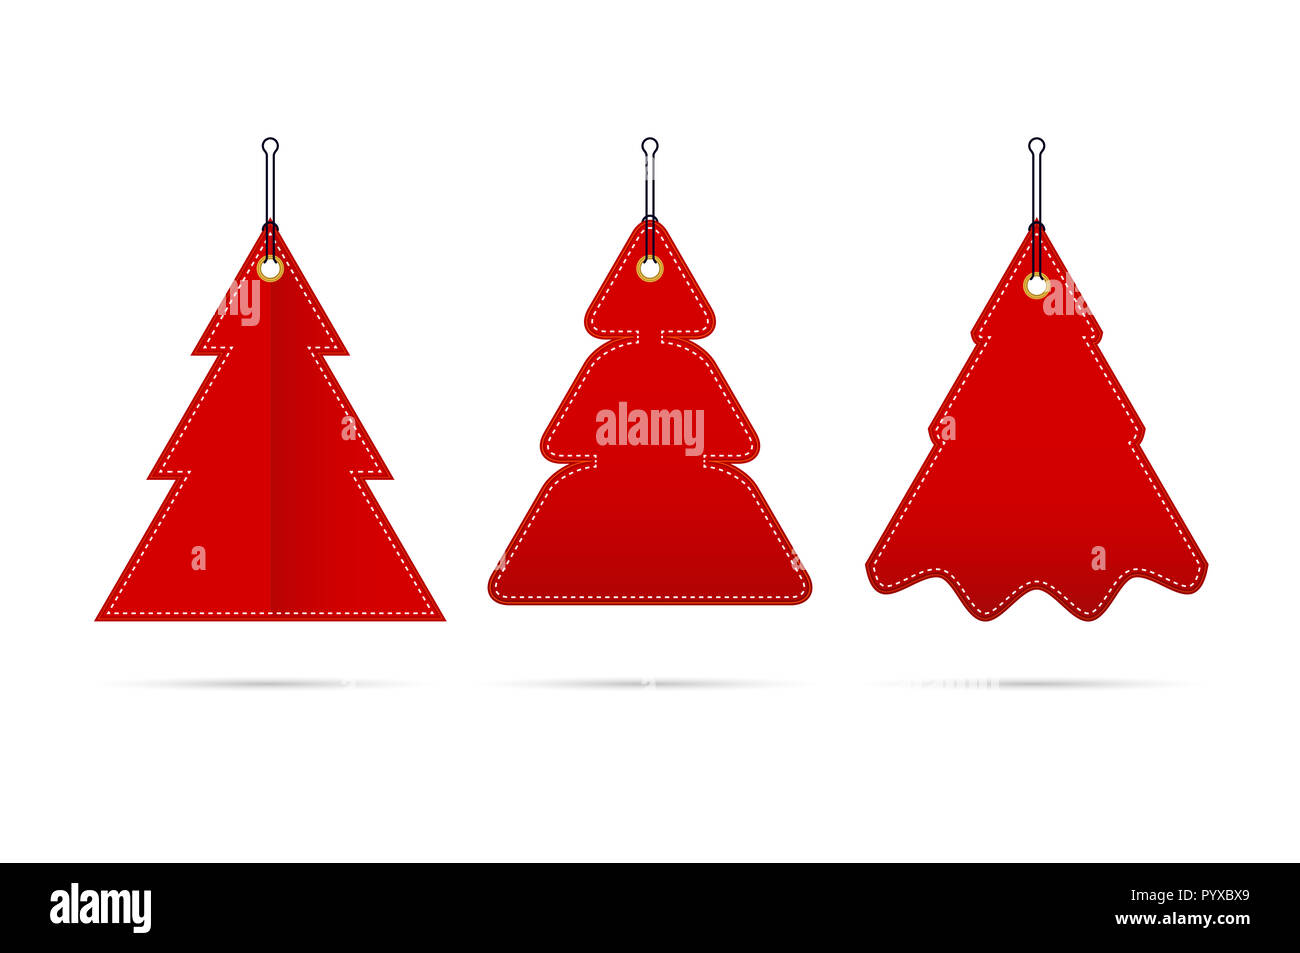 Red Blank Sale Tags In The Form Of Christmas Trees Of Different